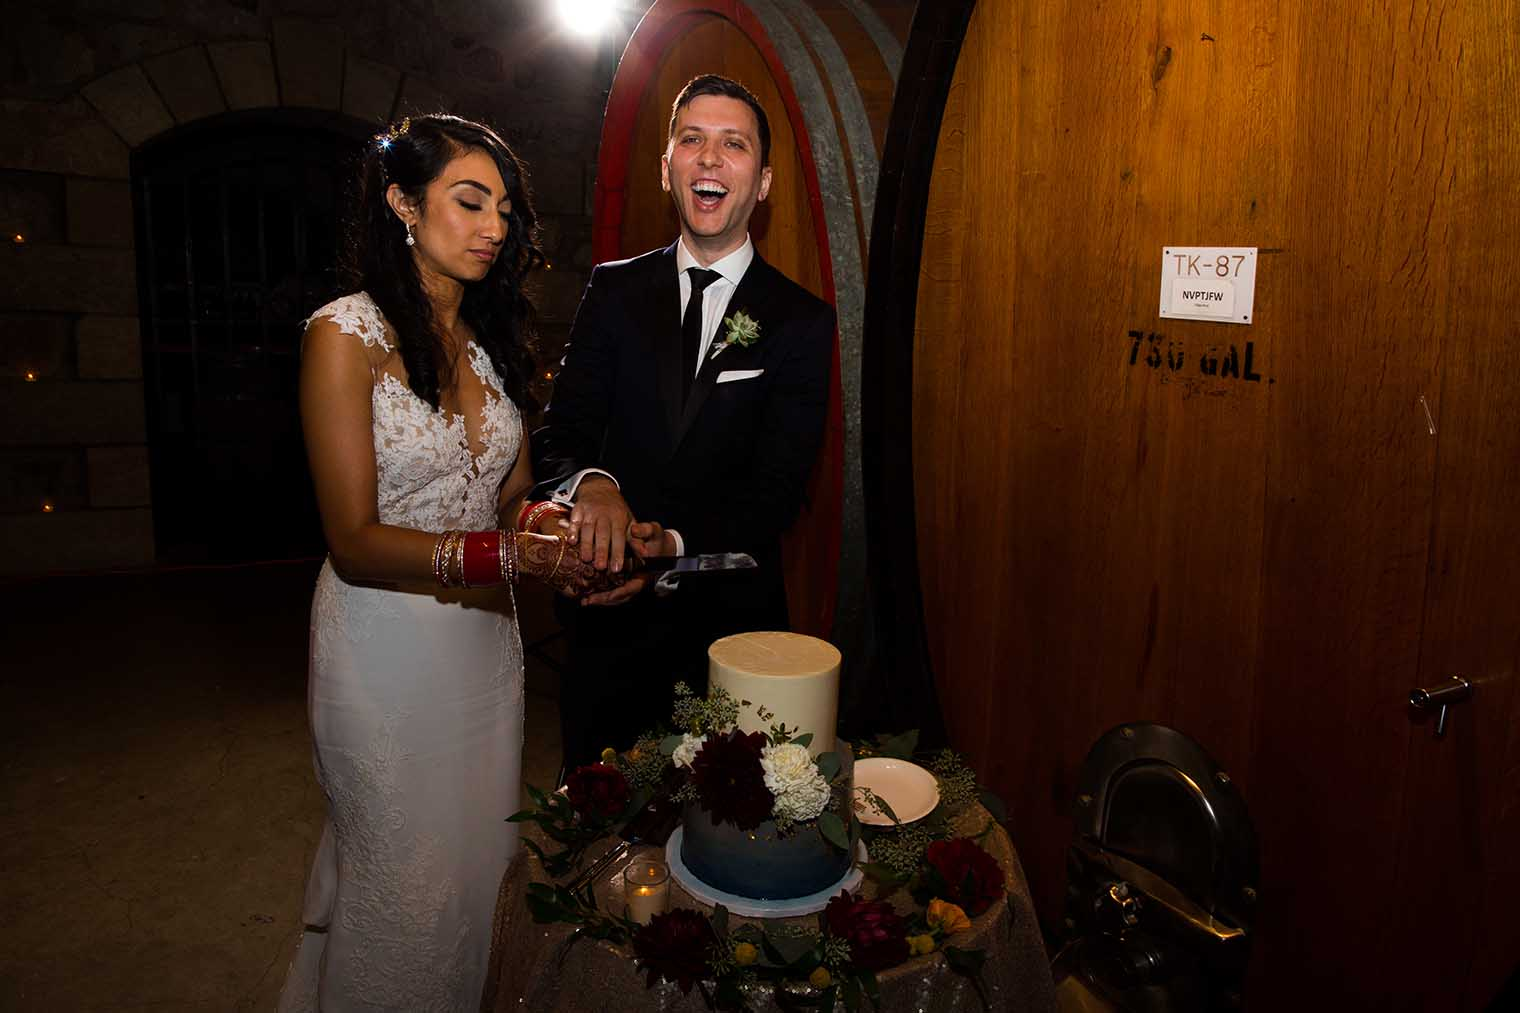 V. Sattui Winery Wedding Reception